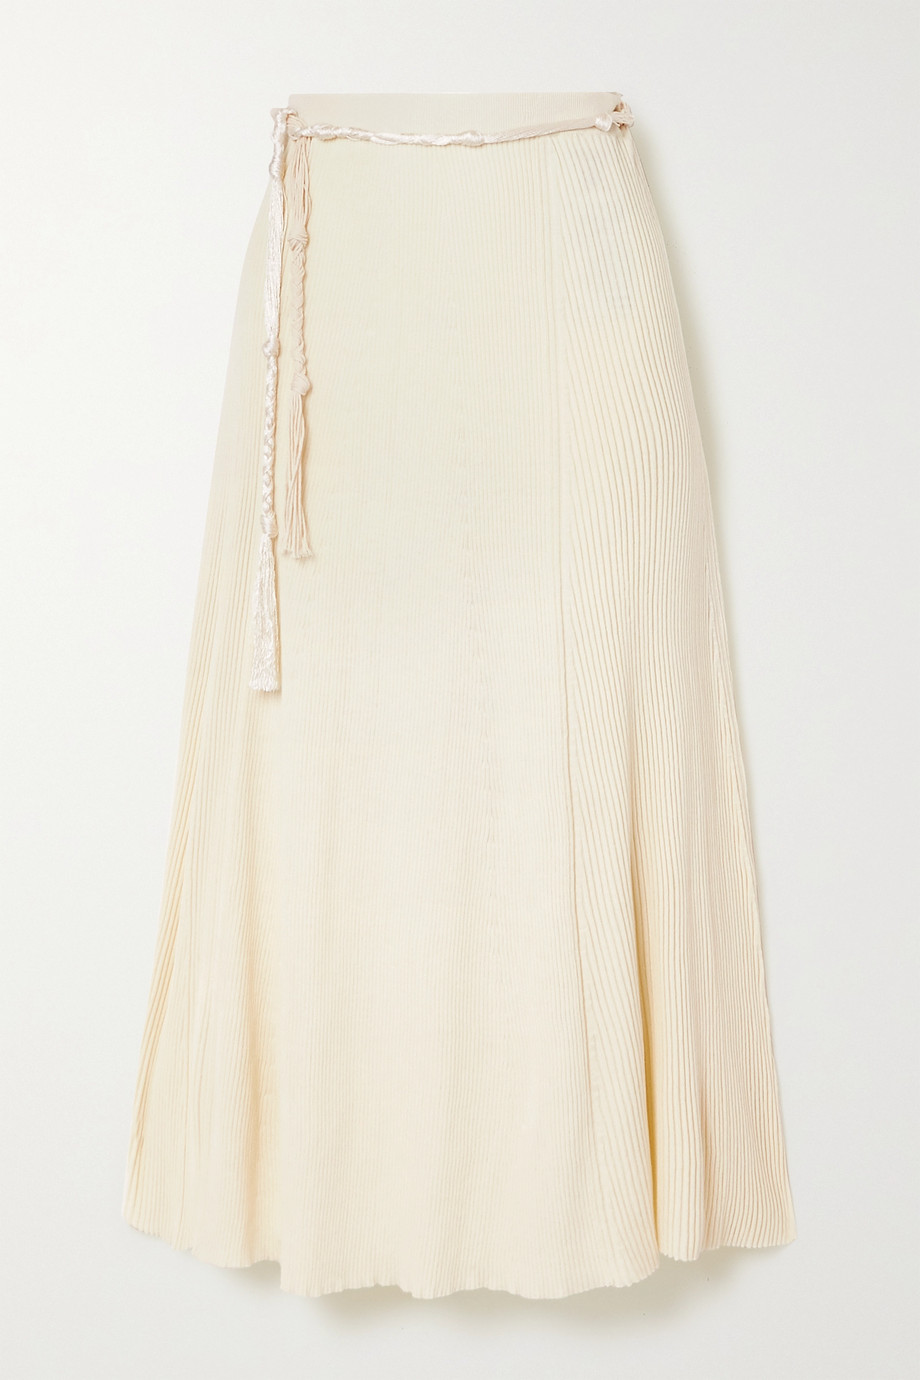 Jil Sander Ribbed cotton midi skirt